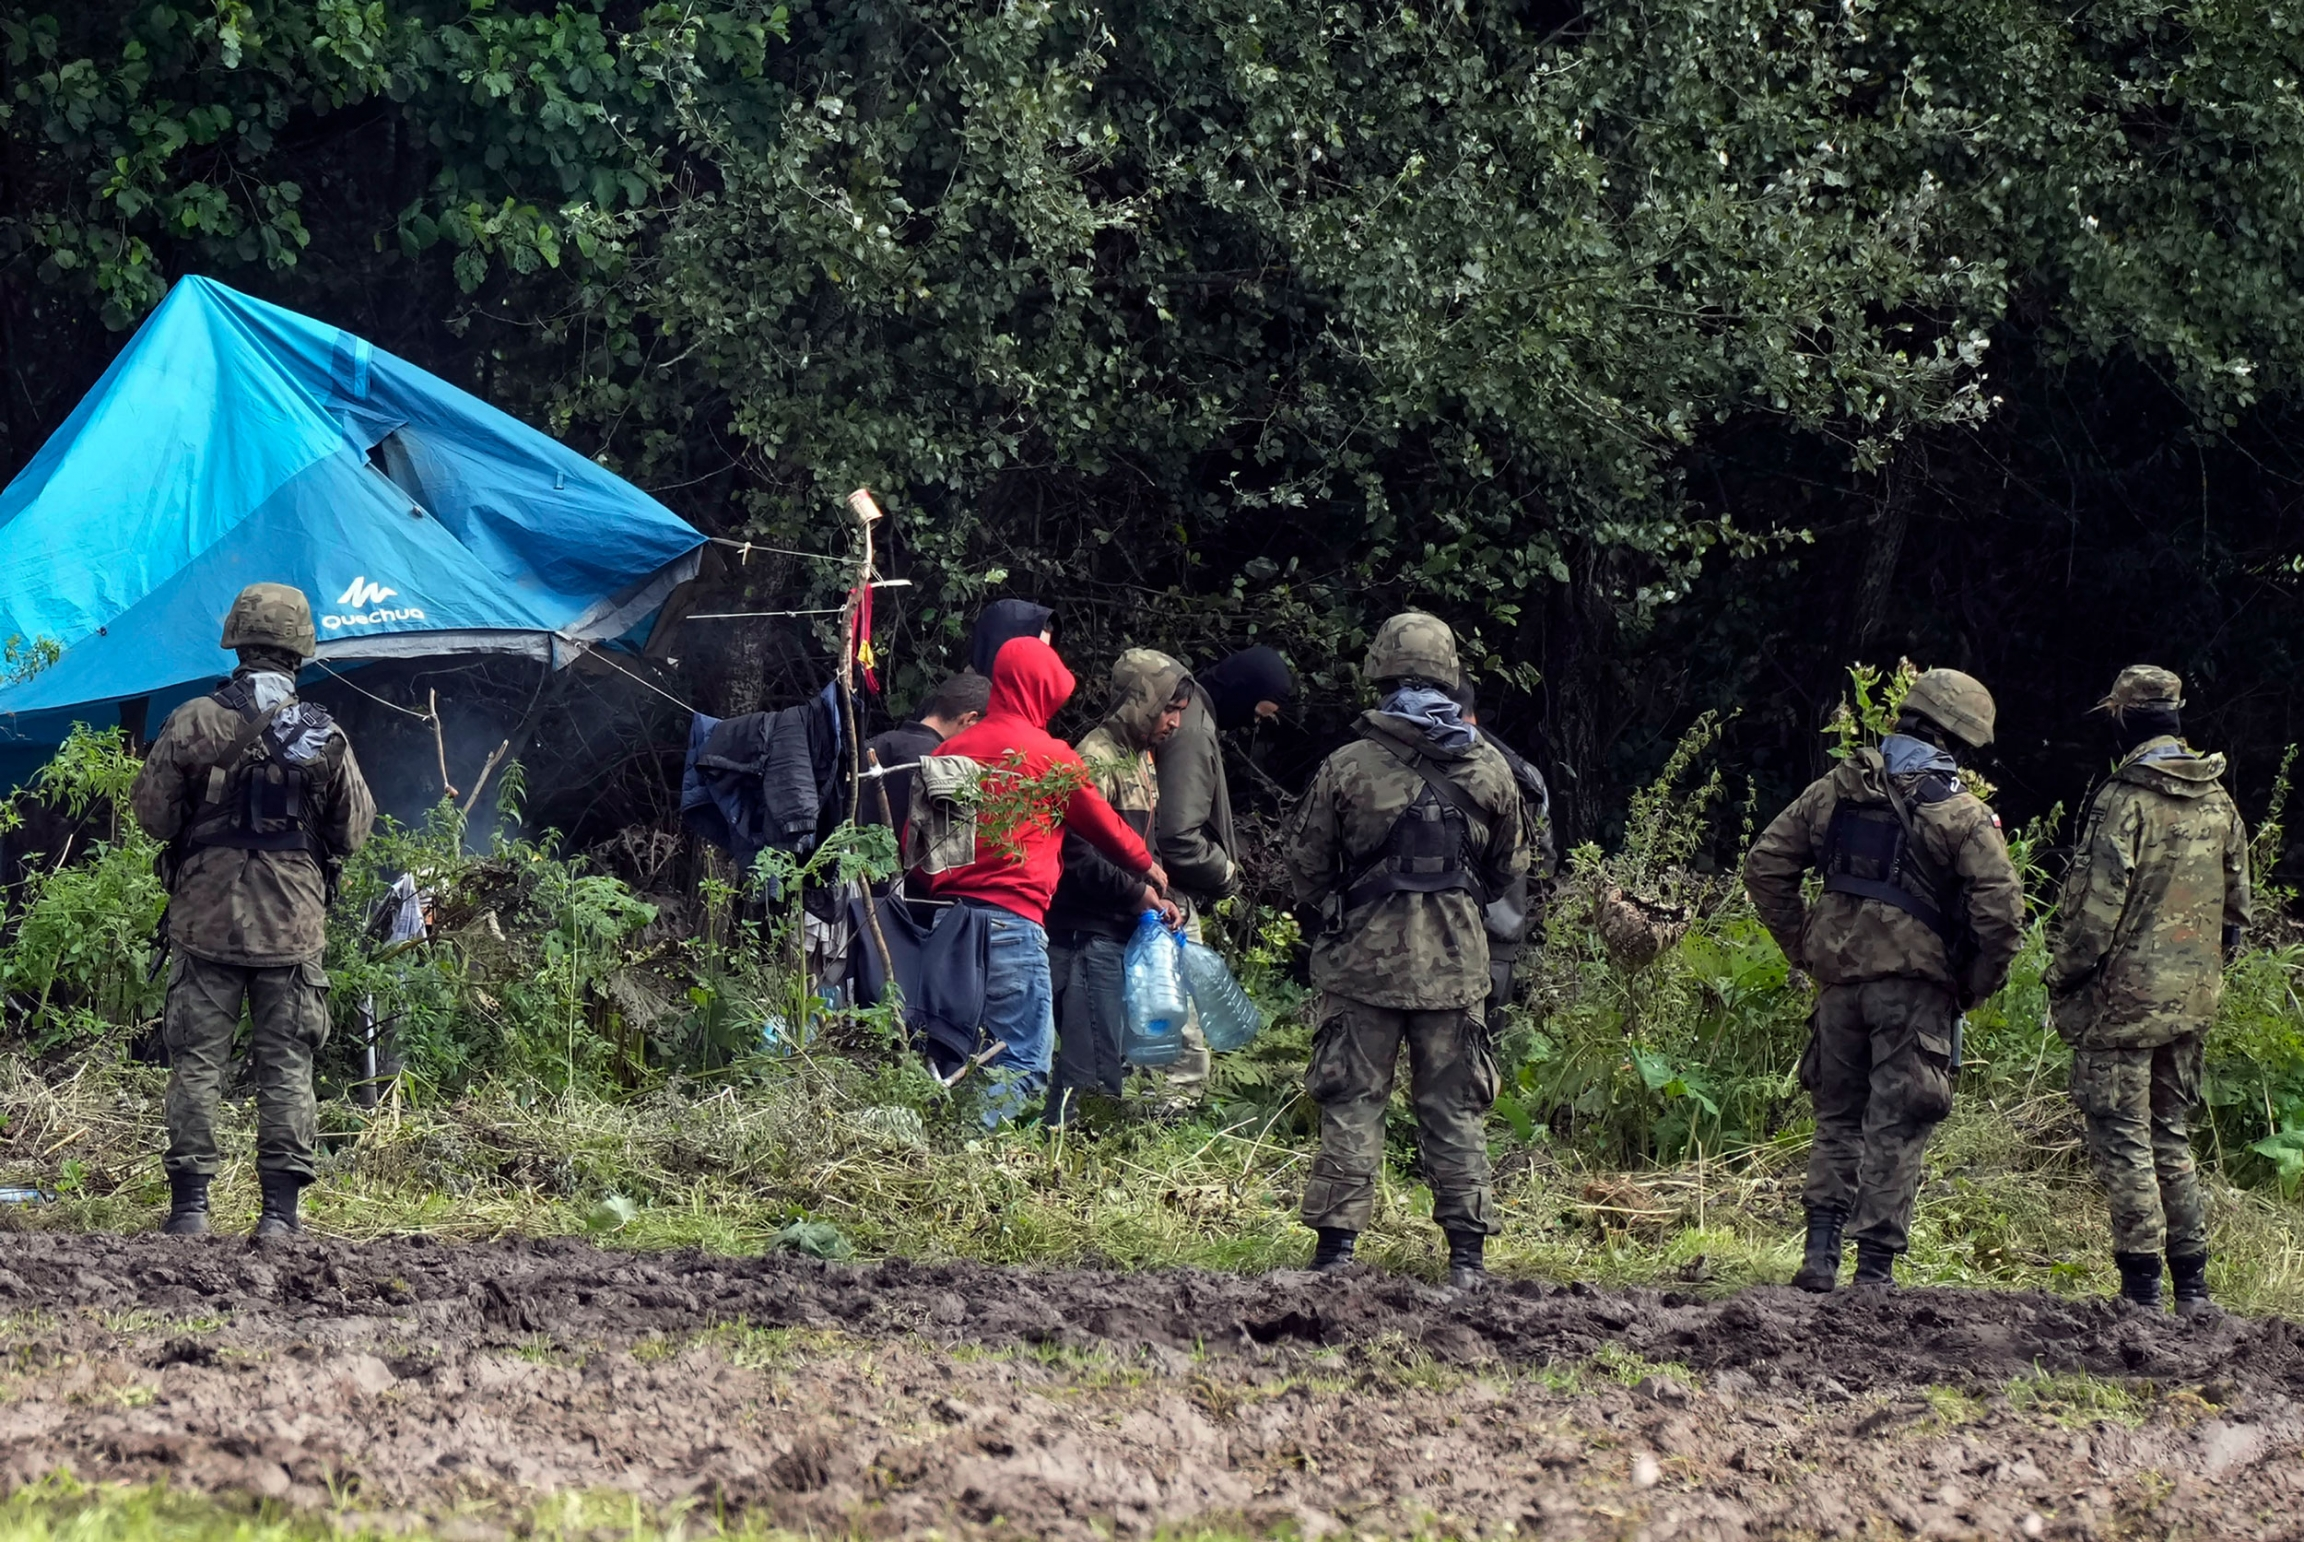 Migrants stuck along the Poland-Belarus border carry plastic water bottles as they are surrounded by Polish forces in Usnarz Gorny, Poland, on Wednesday, Sept. 1, 2021.